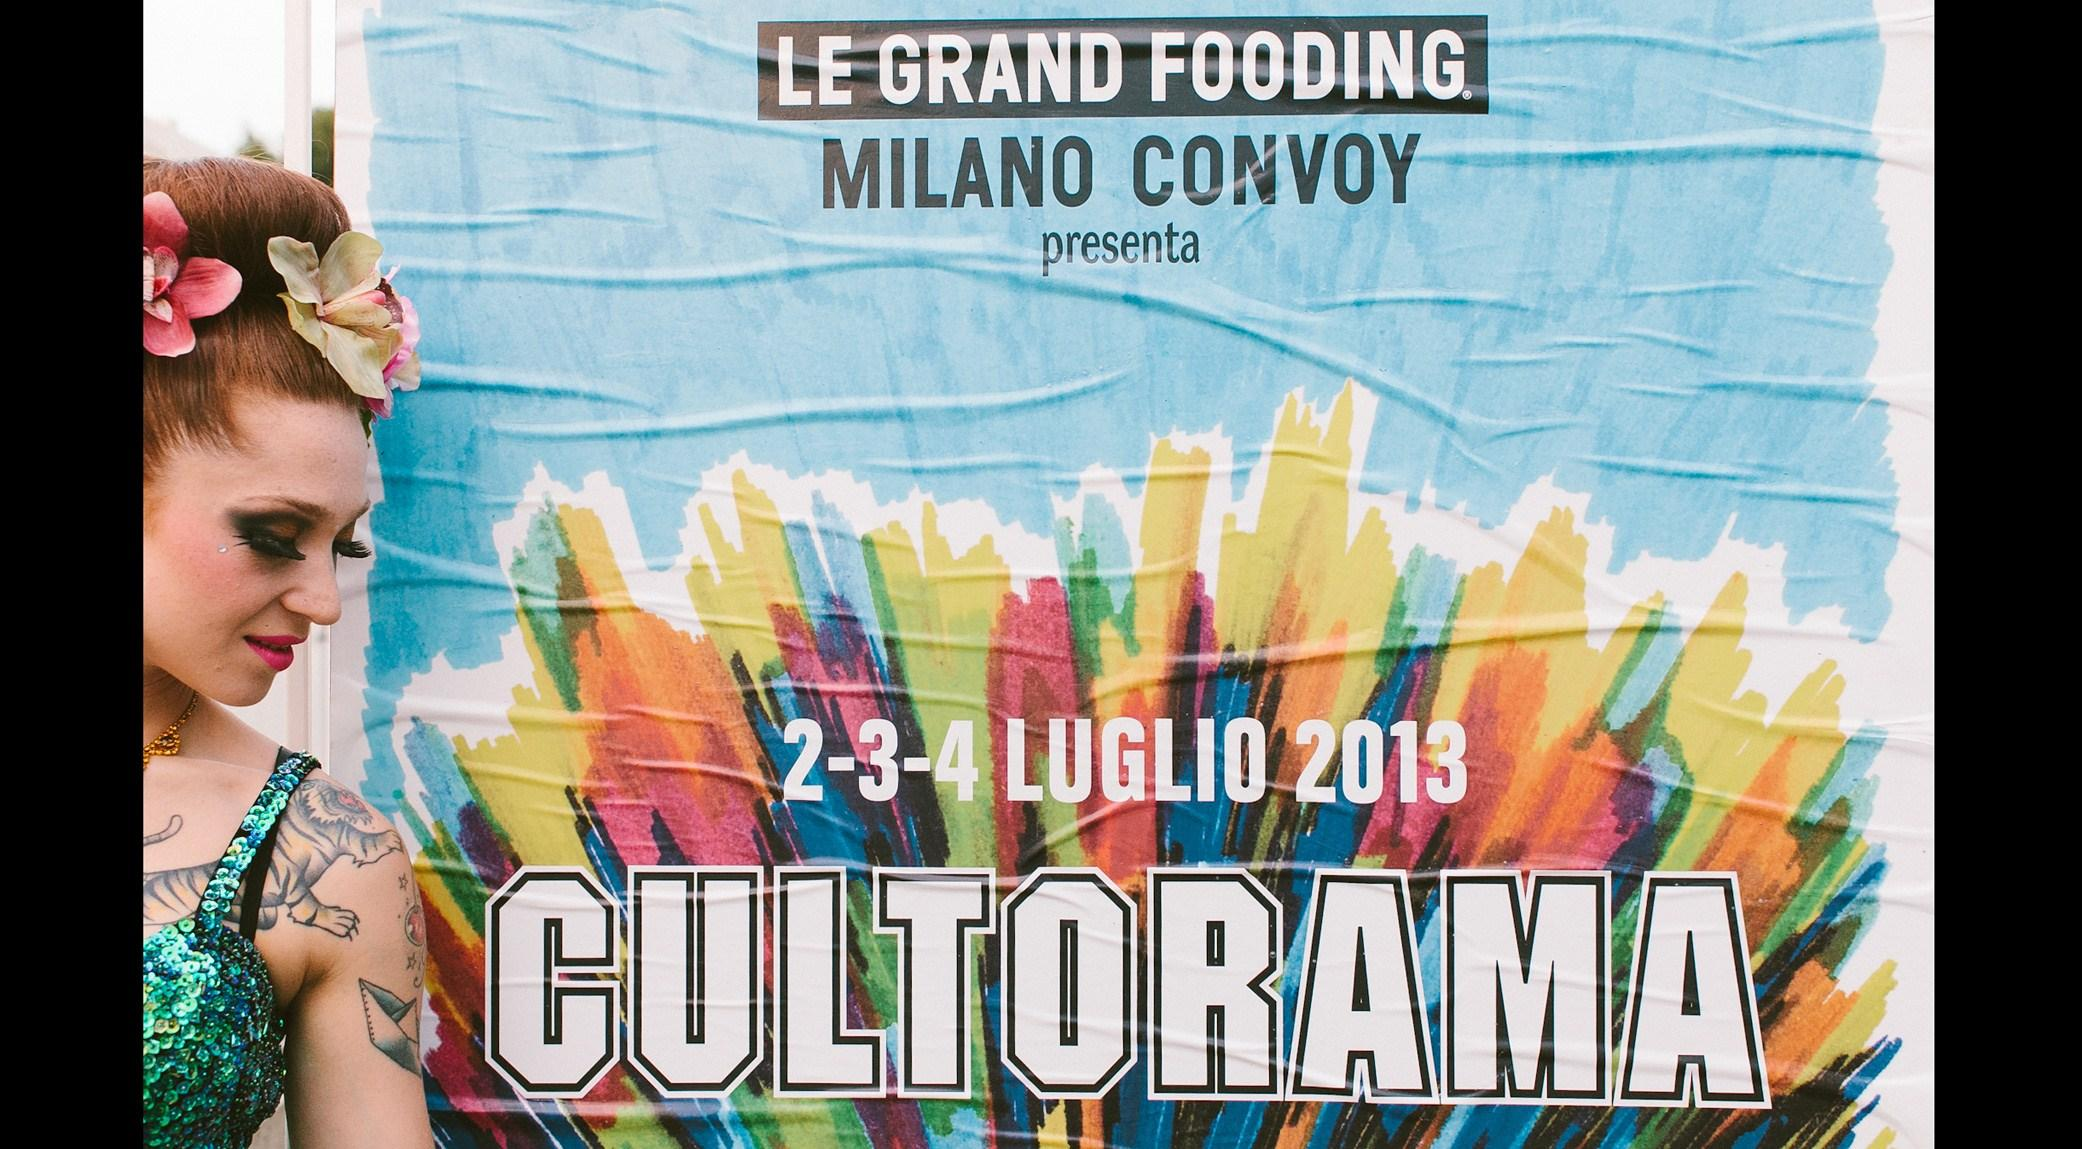 le-grand-fooding-cultorama-2013-cartellone